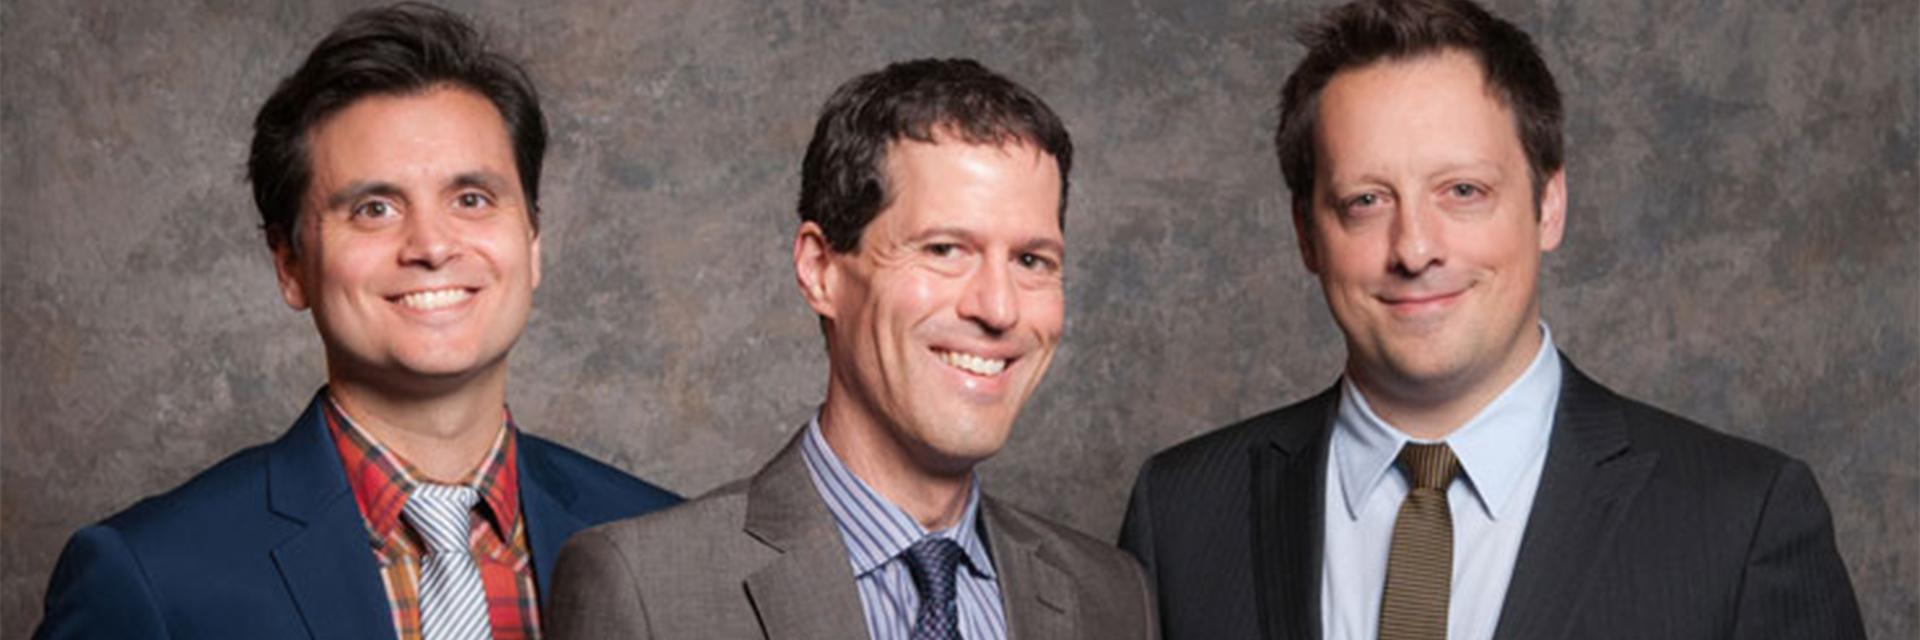 Adam Metallo, Guenter Waibel, Vince Rossi Nominated for 2014 Sammie Award